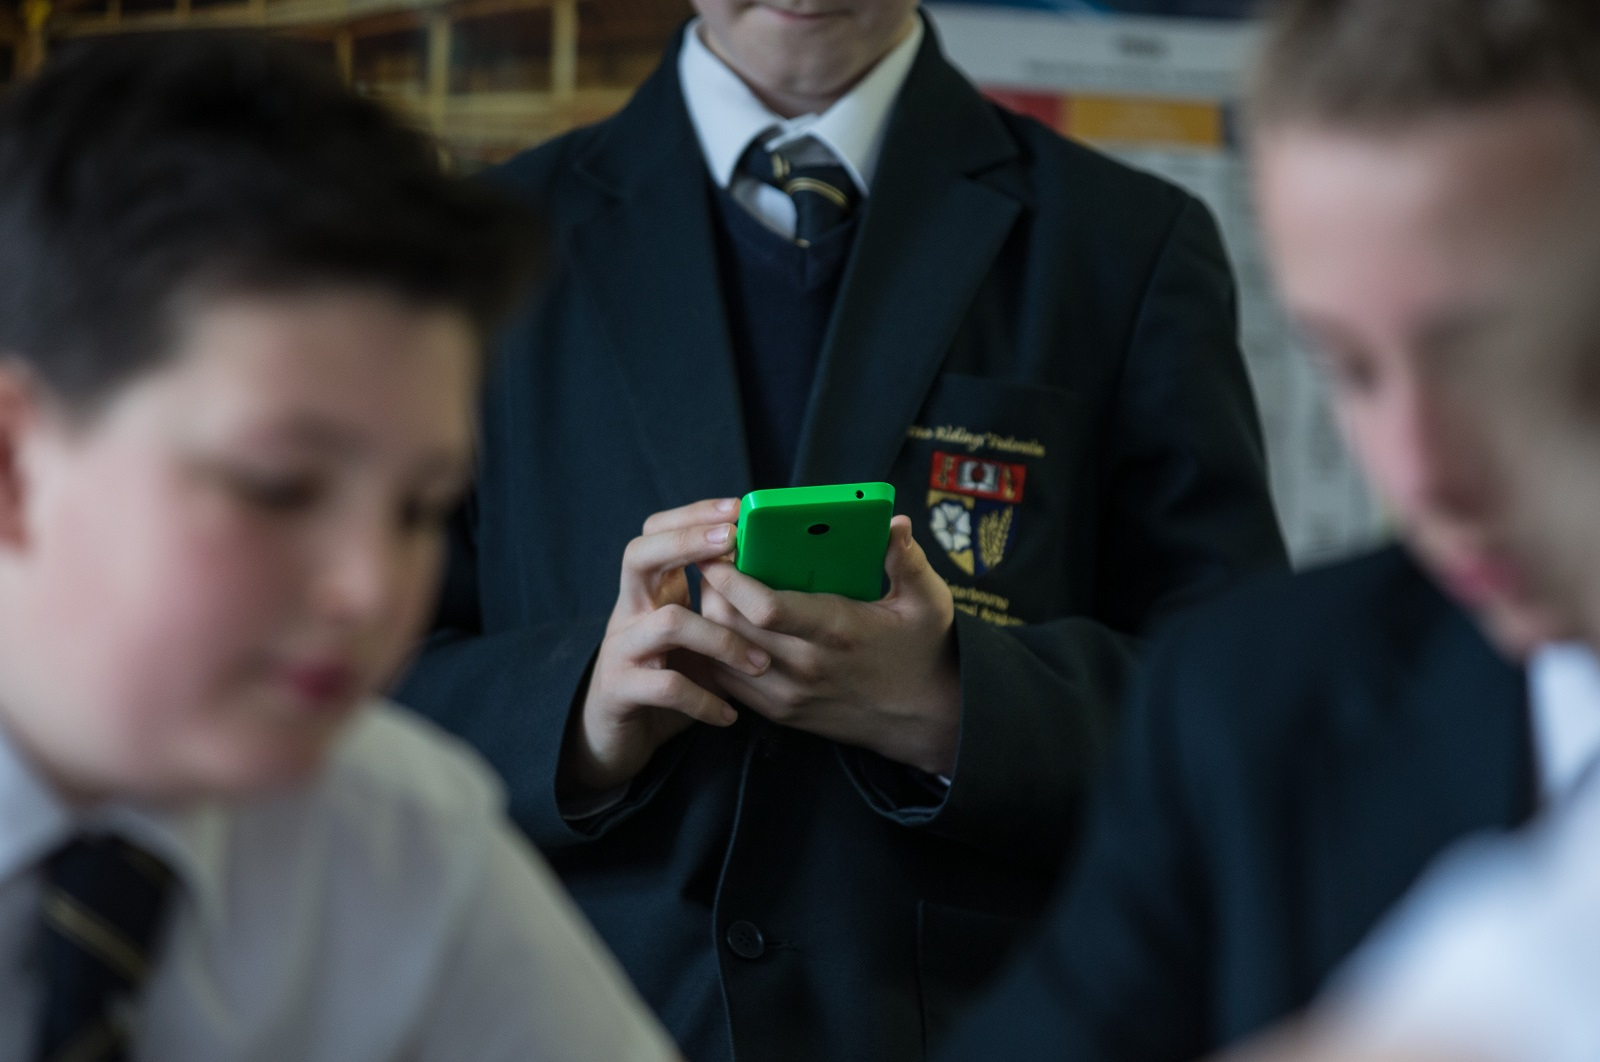 UK schoolboy using smartphone